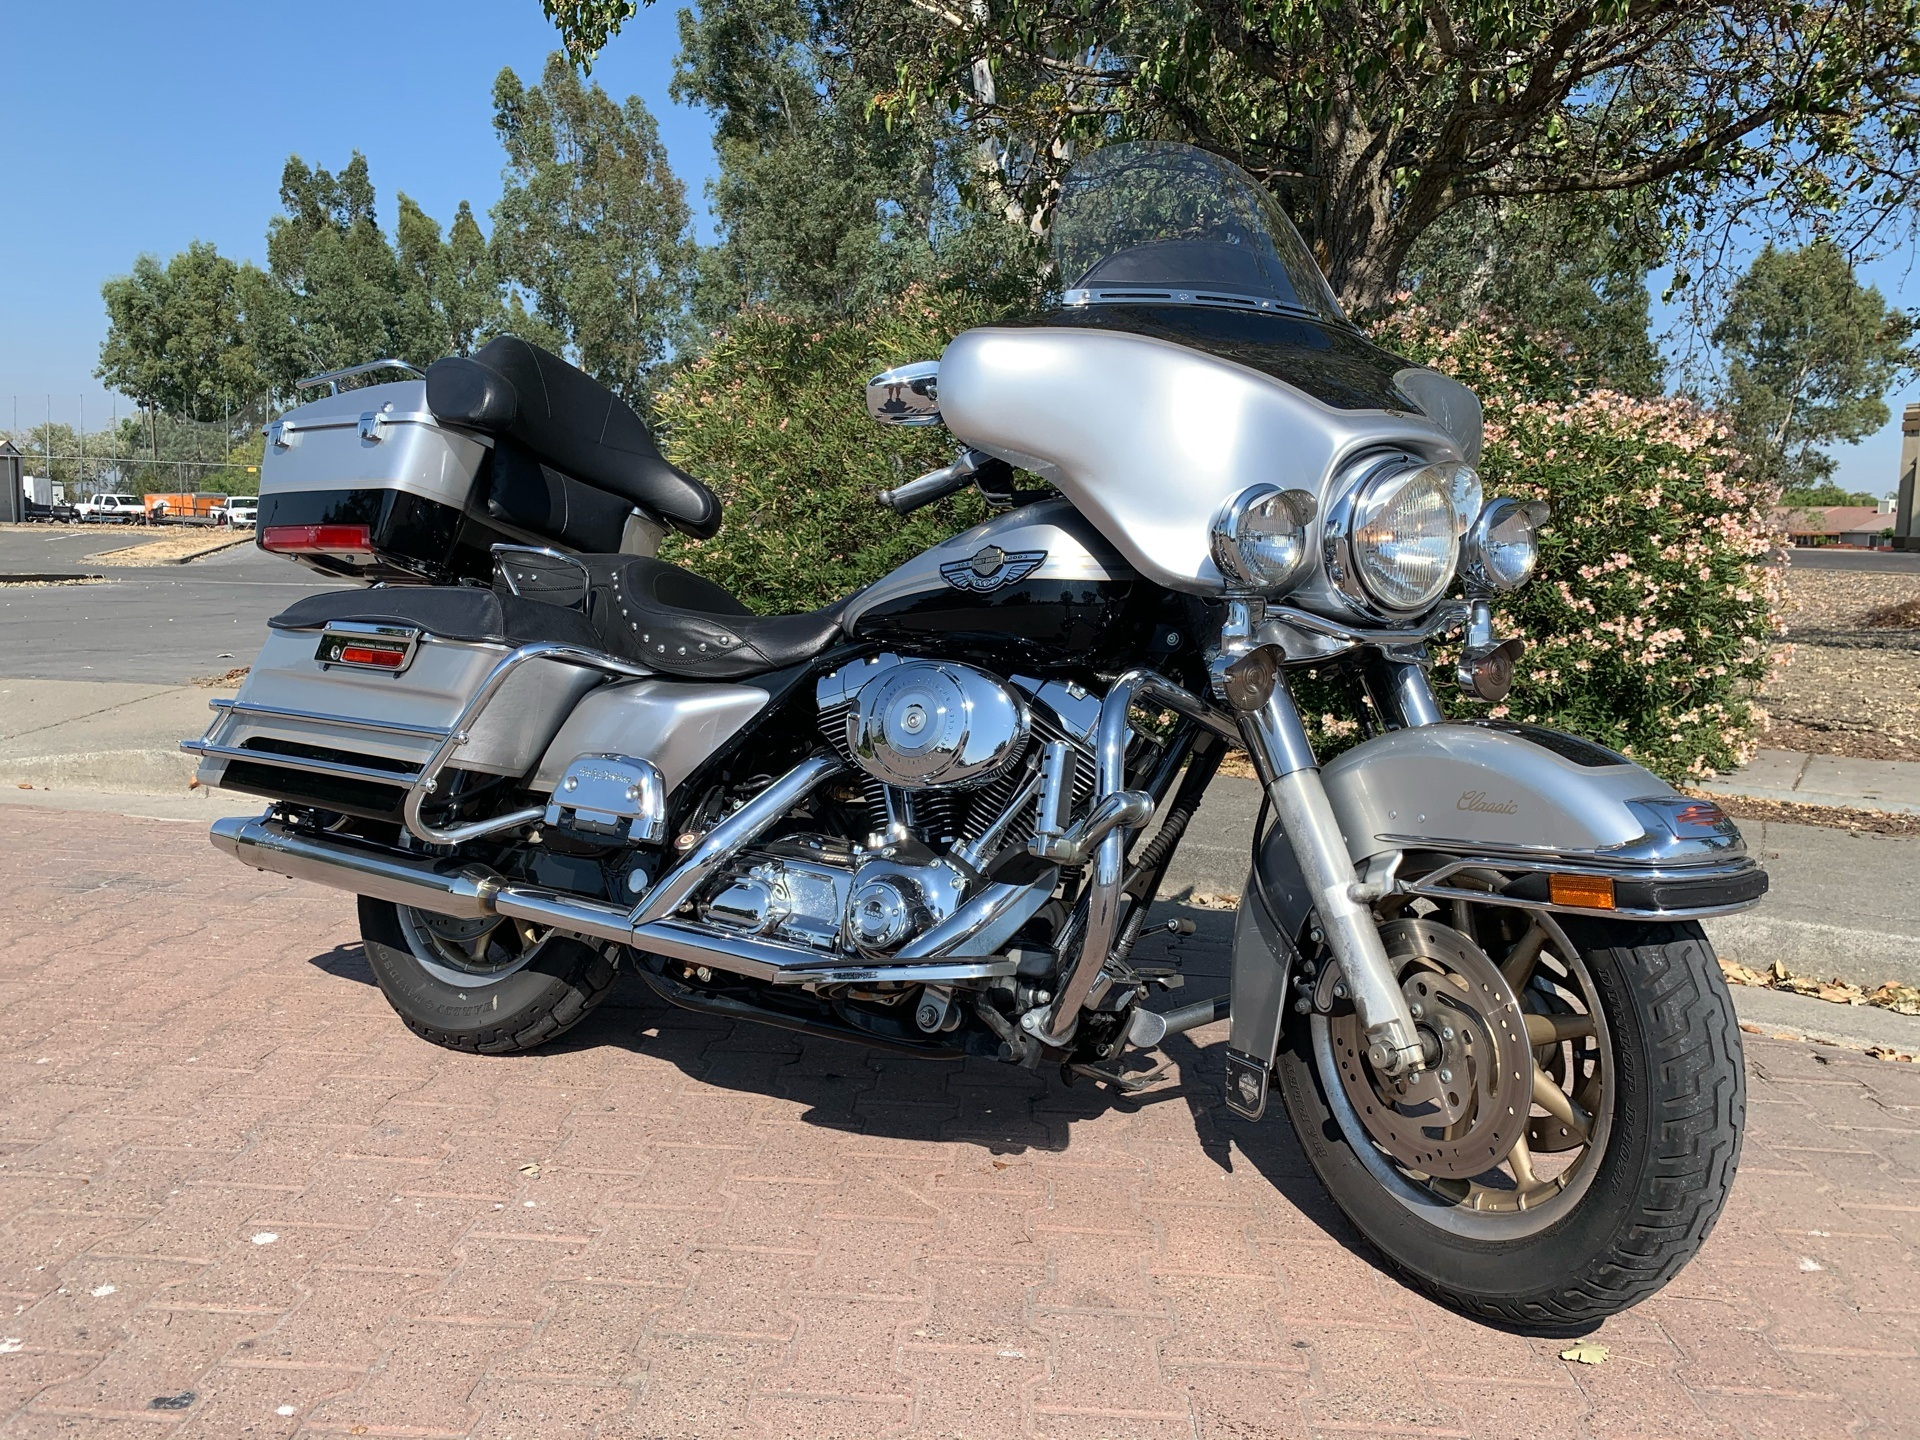 2003 Harley-Davidson FLHTC/FLHTCI Electra Glide® Classic in Vacaville, California - Photo 1